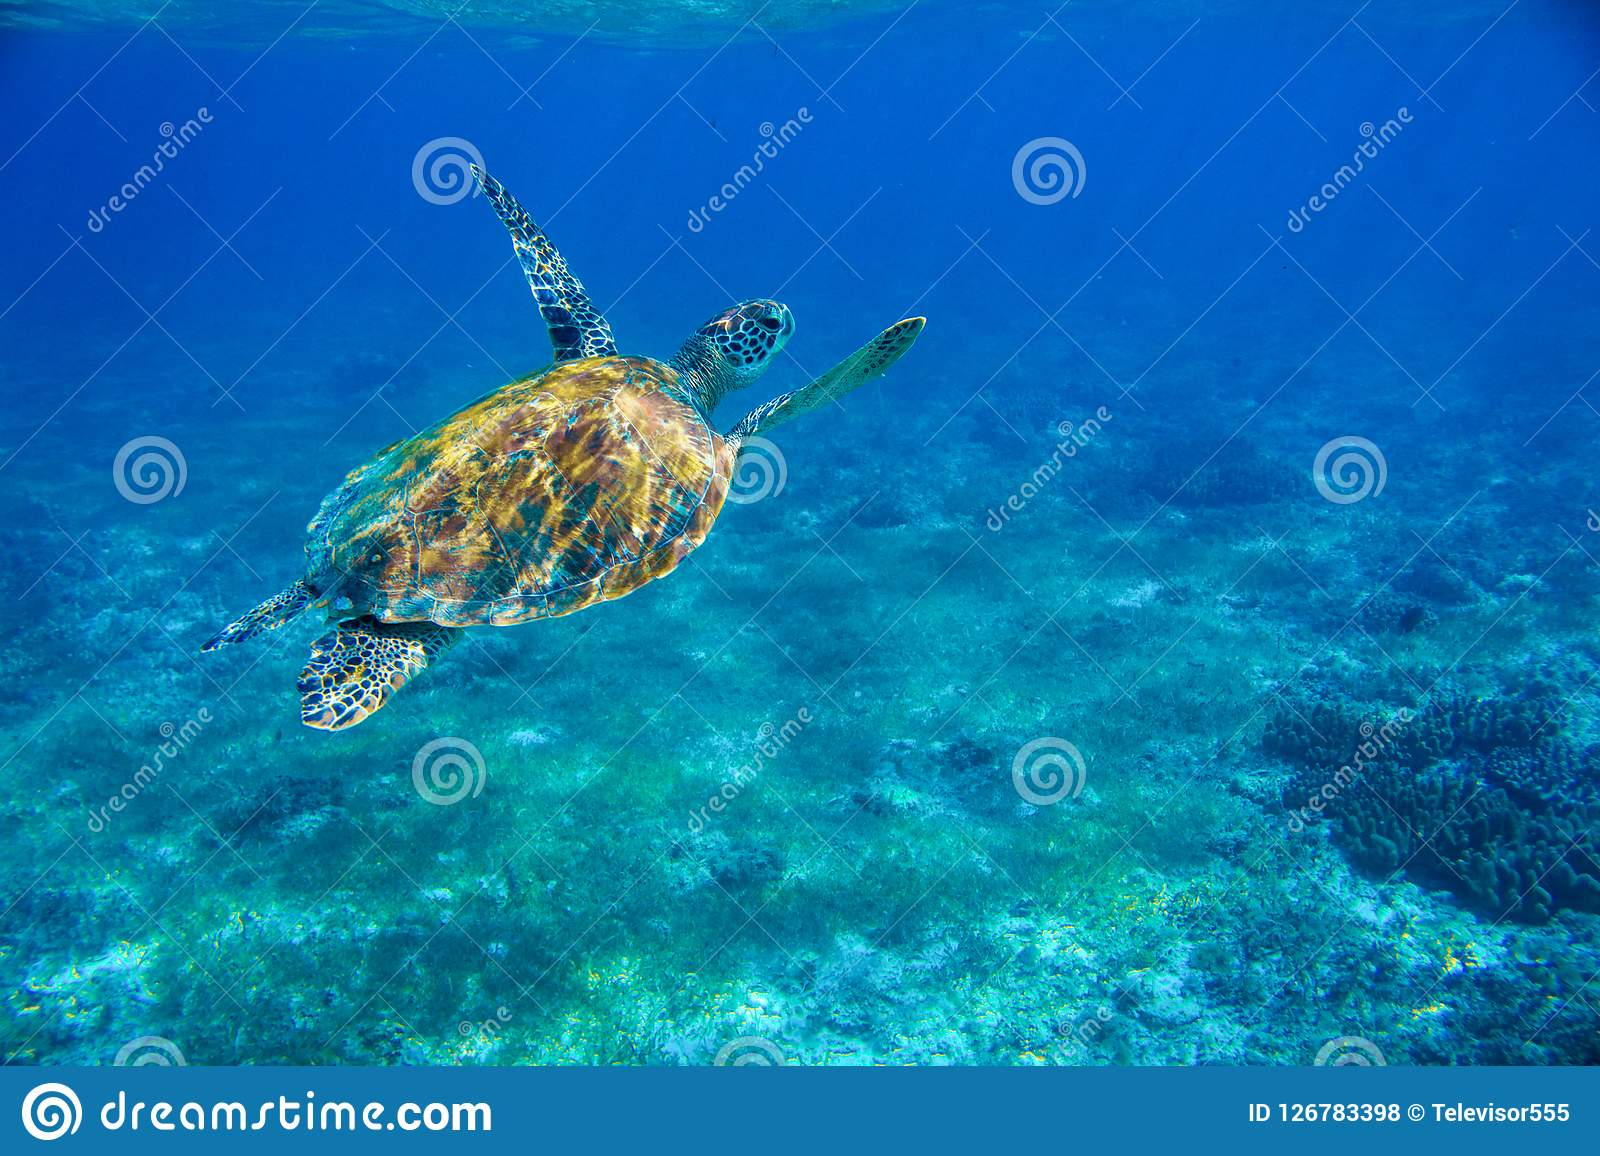 Sea Turtle In Shallow Water Underwater Photo. Marine Green